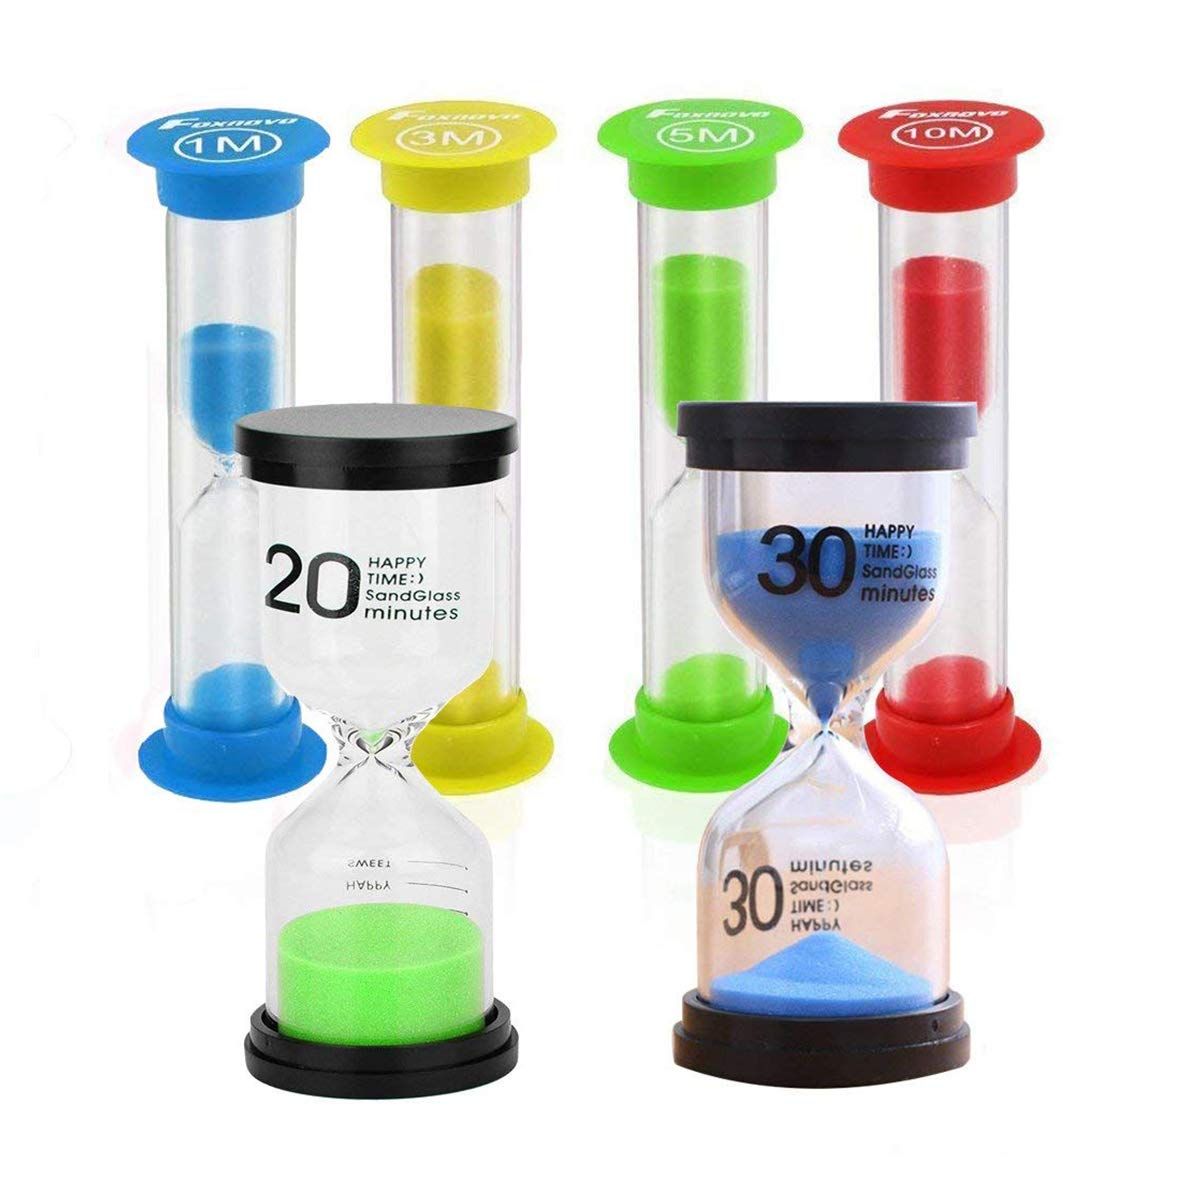 STONCEL Hourglass Sand Timer, 6pcs Sandglass Sand Clock Timer 1min / 3mins / 5mins / 10mins/20mins/30mins, Kids Toothbrush Timer for Children Playing Games Classroom Kitchen Office Decoration